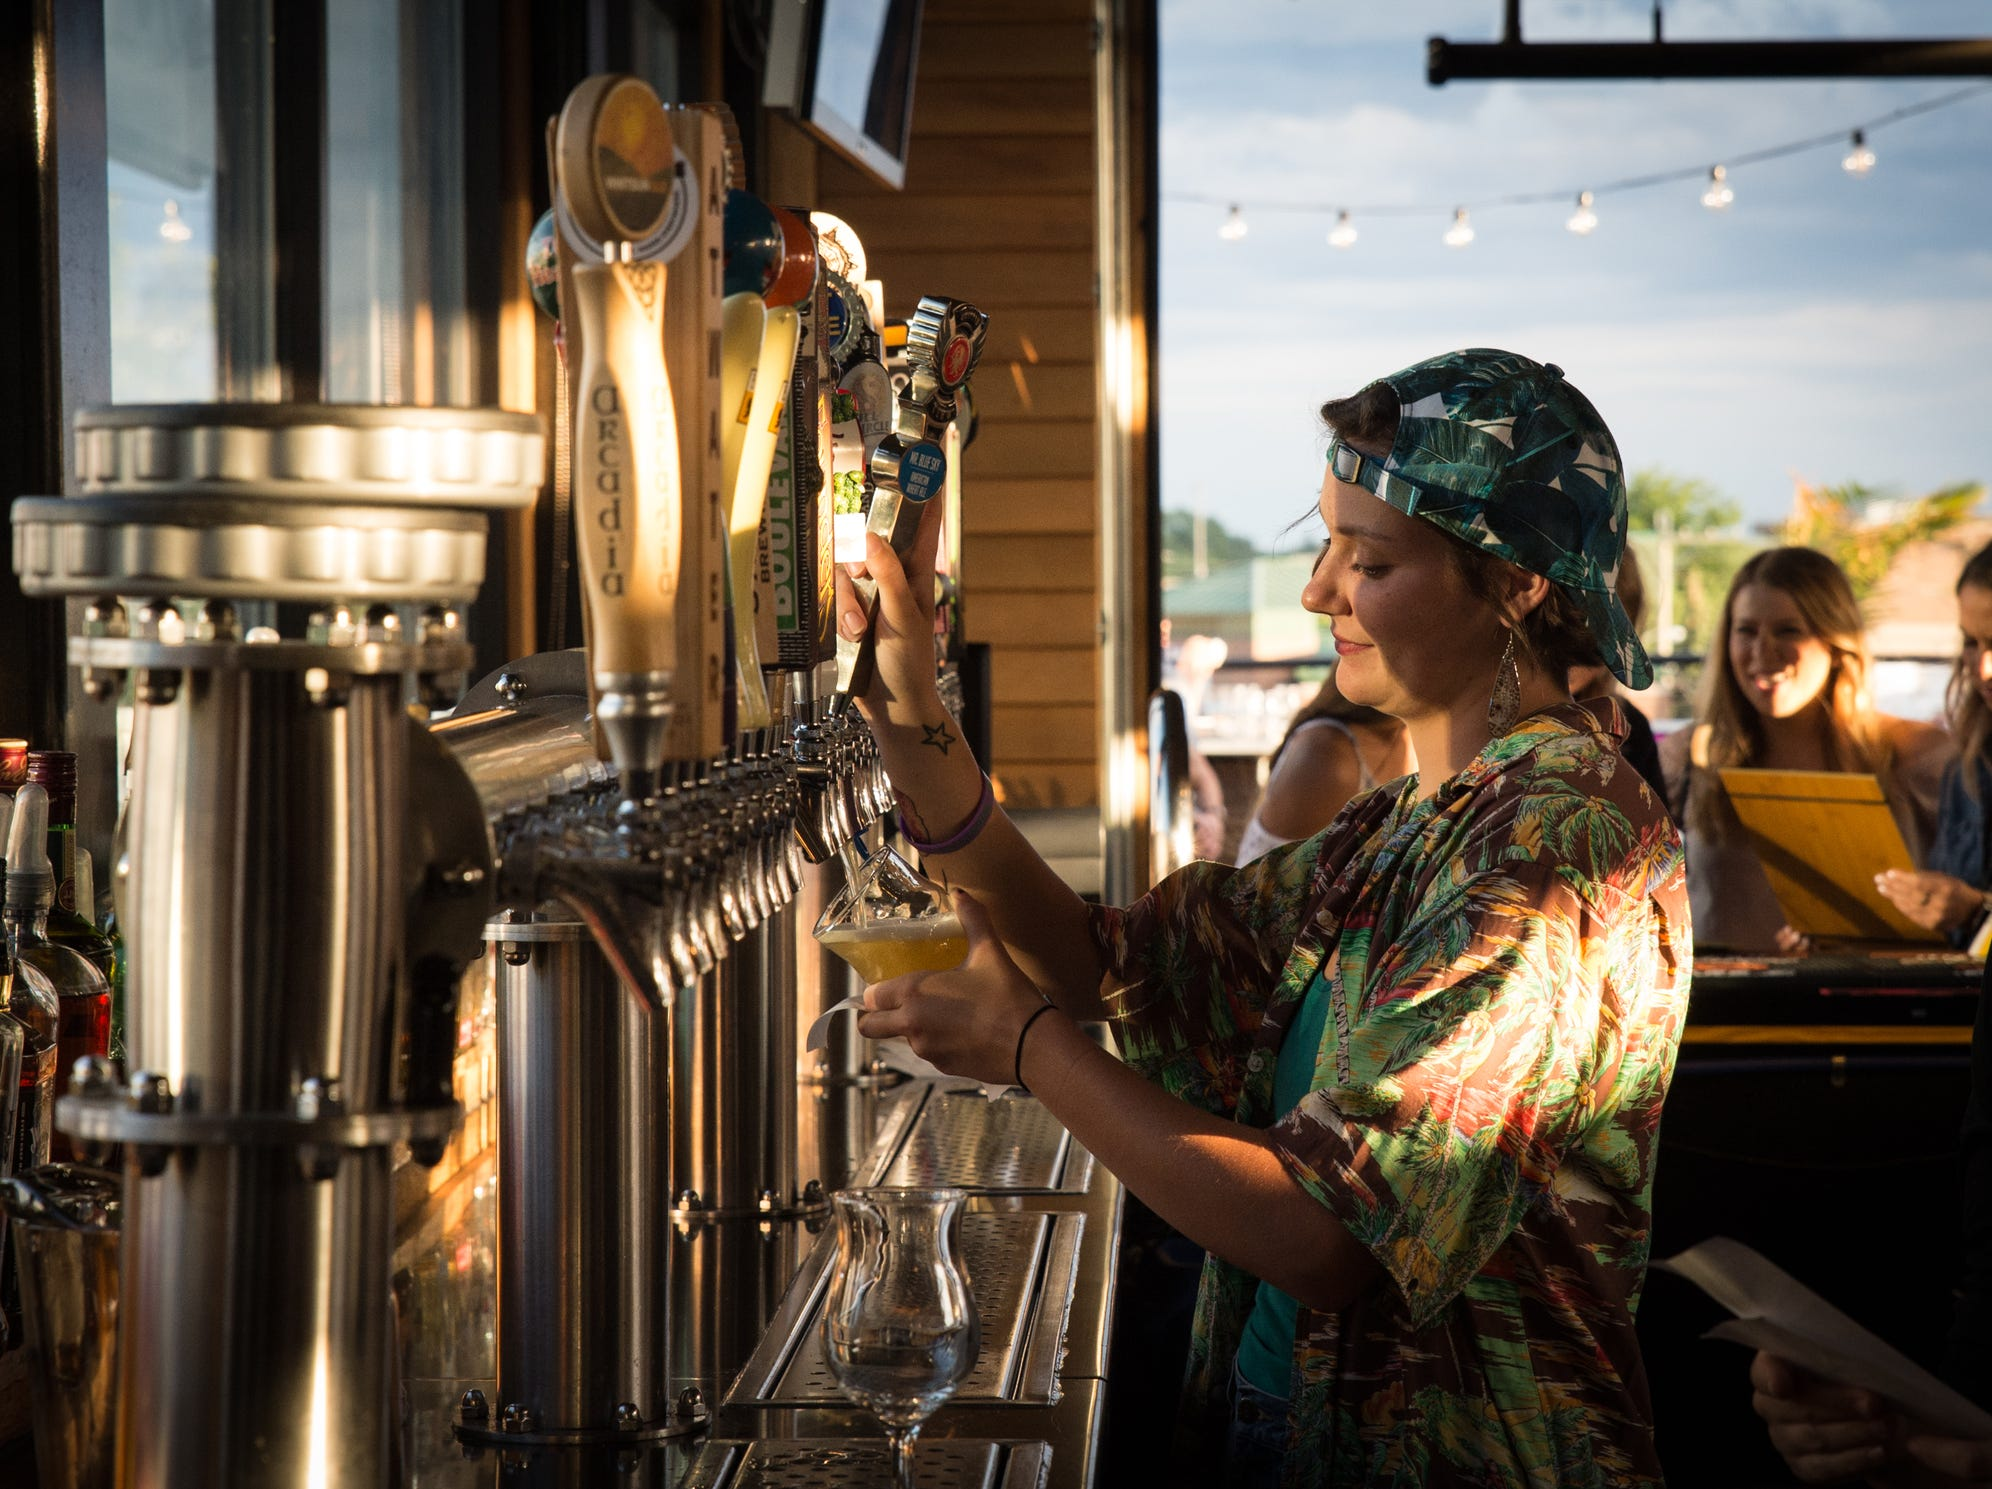 Sarah Heuninck of Detroit pours drafts on the third floor terrace of HopCat in Royal Oak on Friday, July 20, 2018.